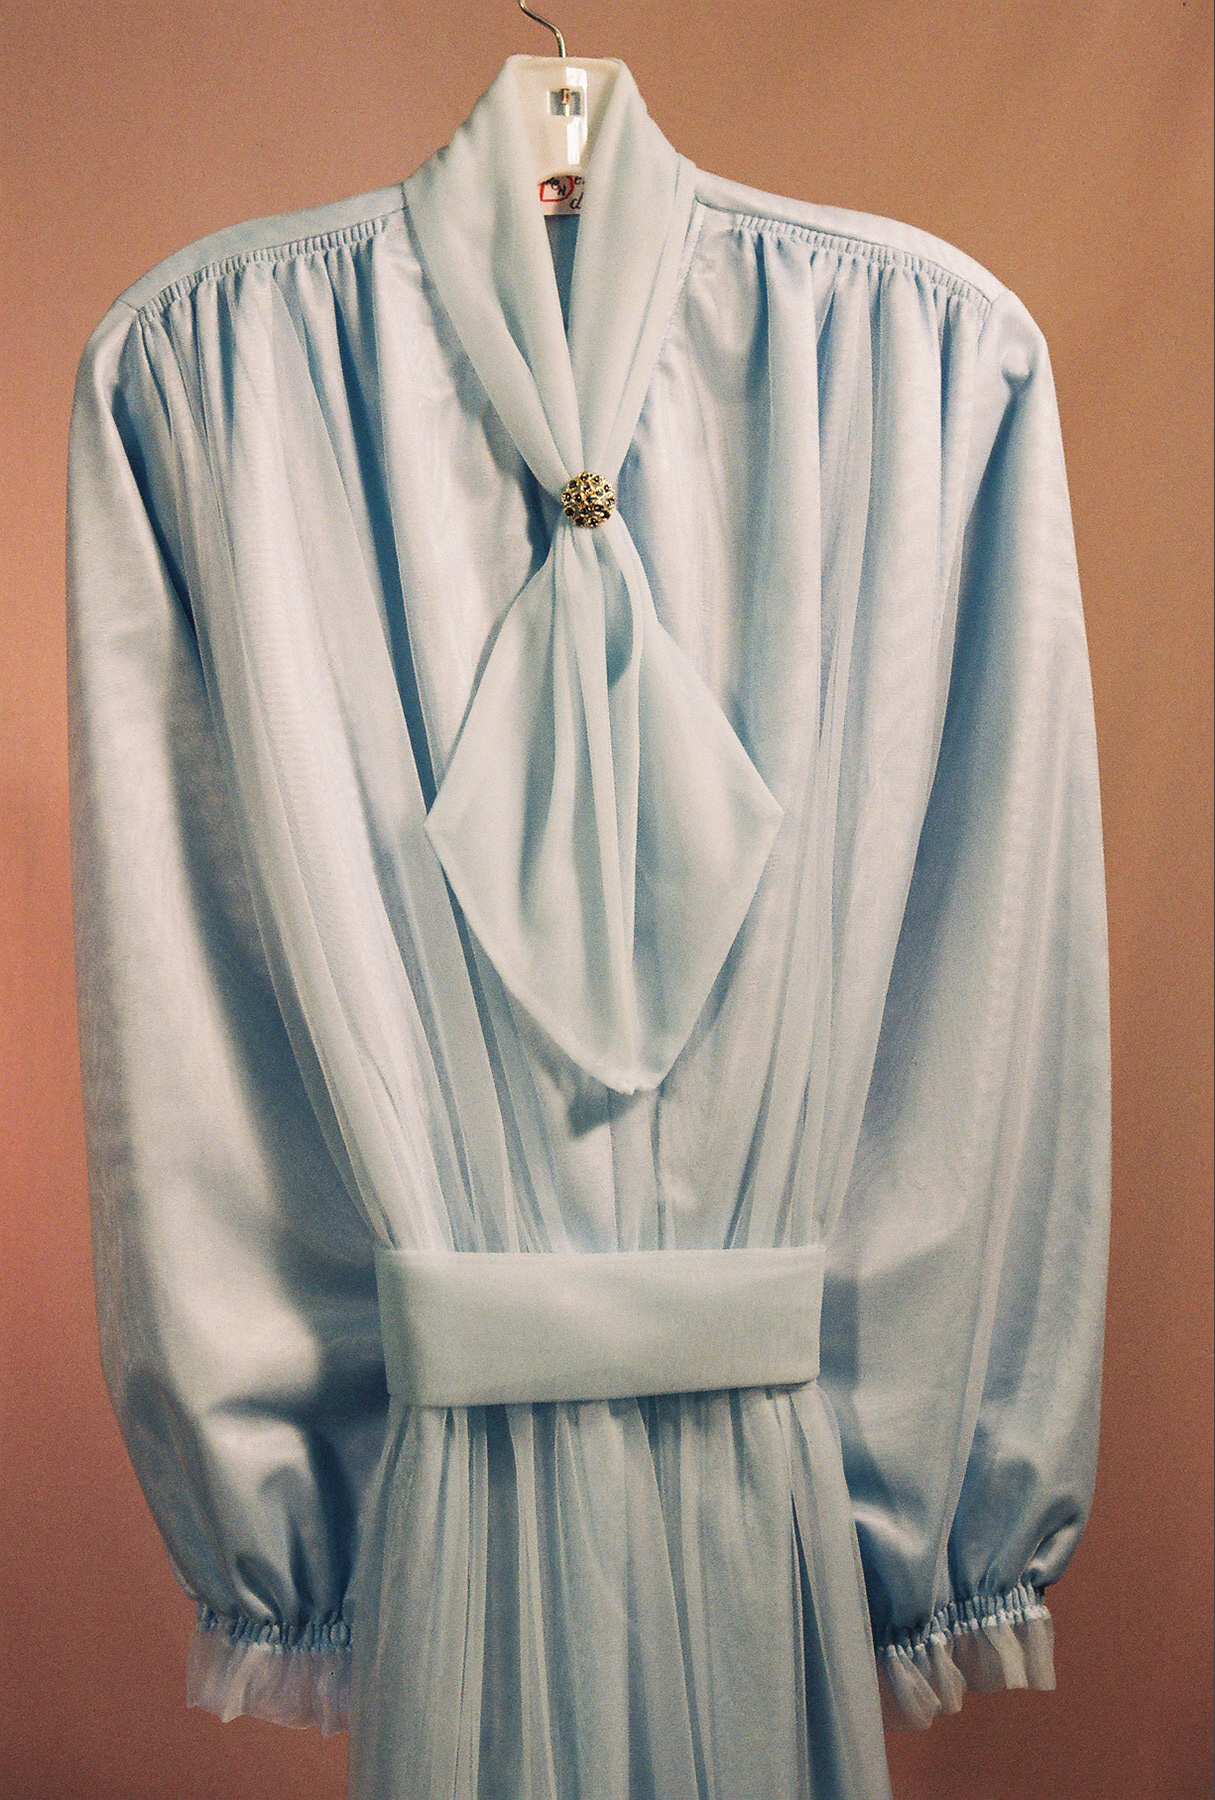 Image Gallery Burial Gowns